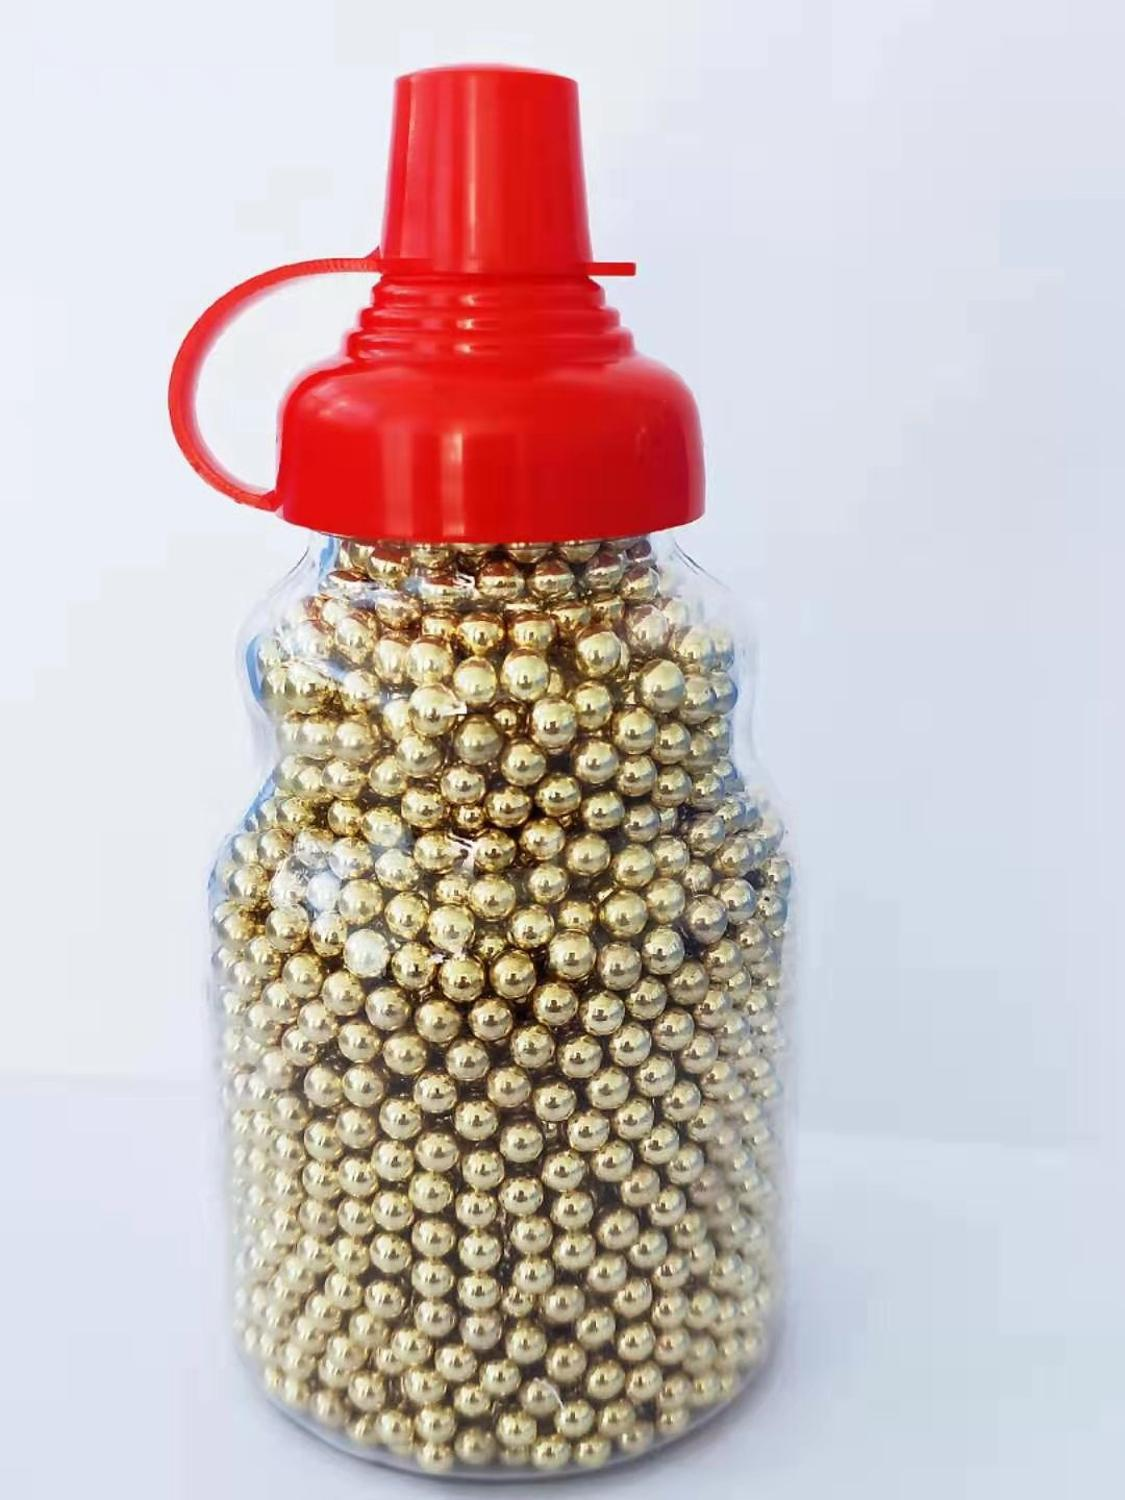 10bottlesX3000Qty 4.5mm Bbs .177 Carbon Steel Brass Plated Precision Balls  Bottle Package